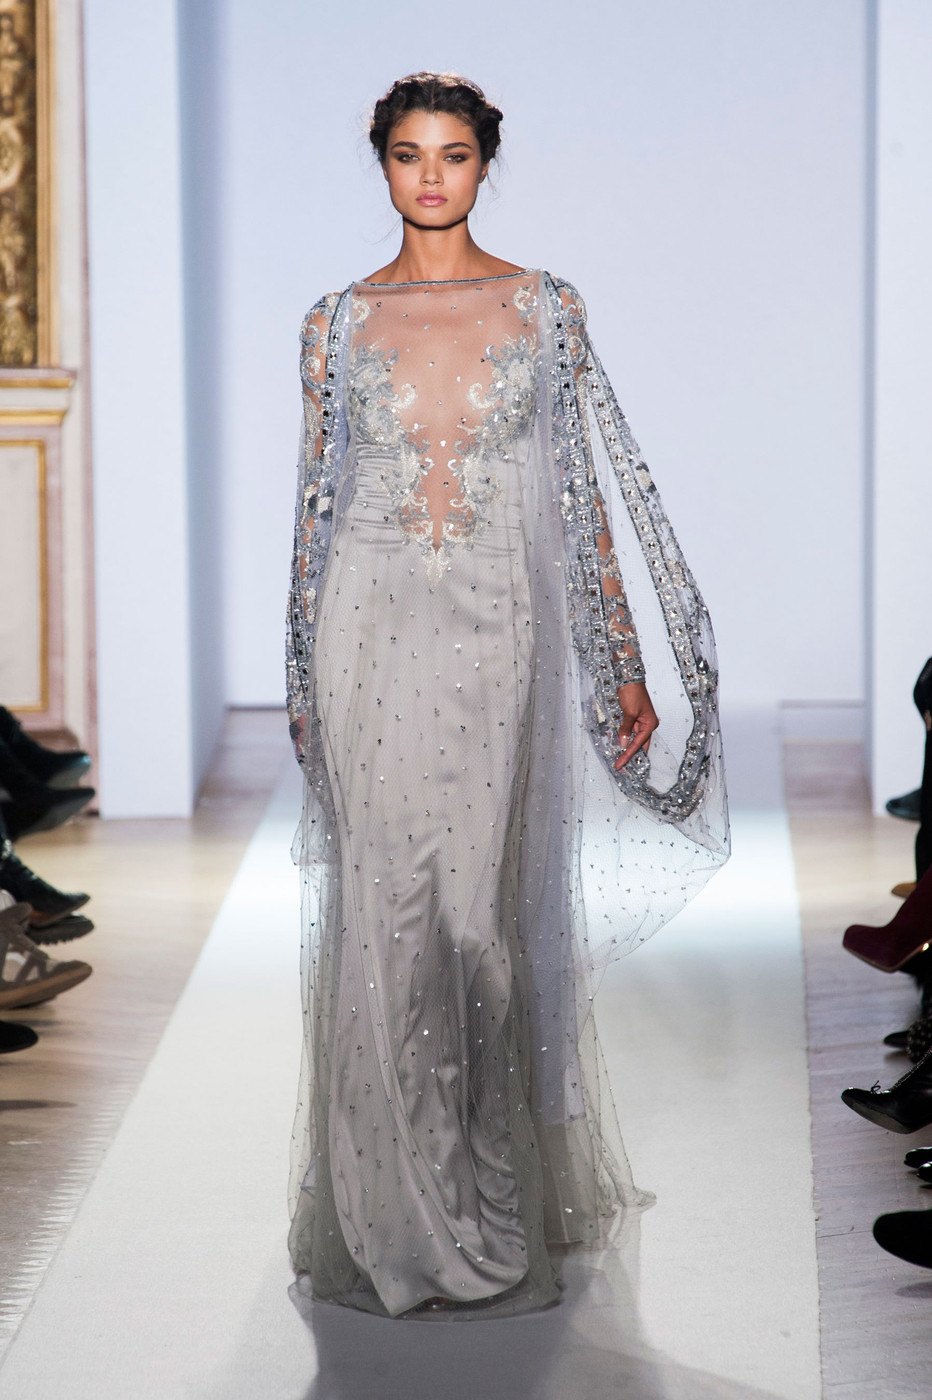 Zuhair murad haute couture spring 2013 spring 2013 39 s for Haute couture list